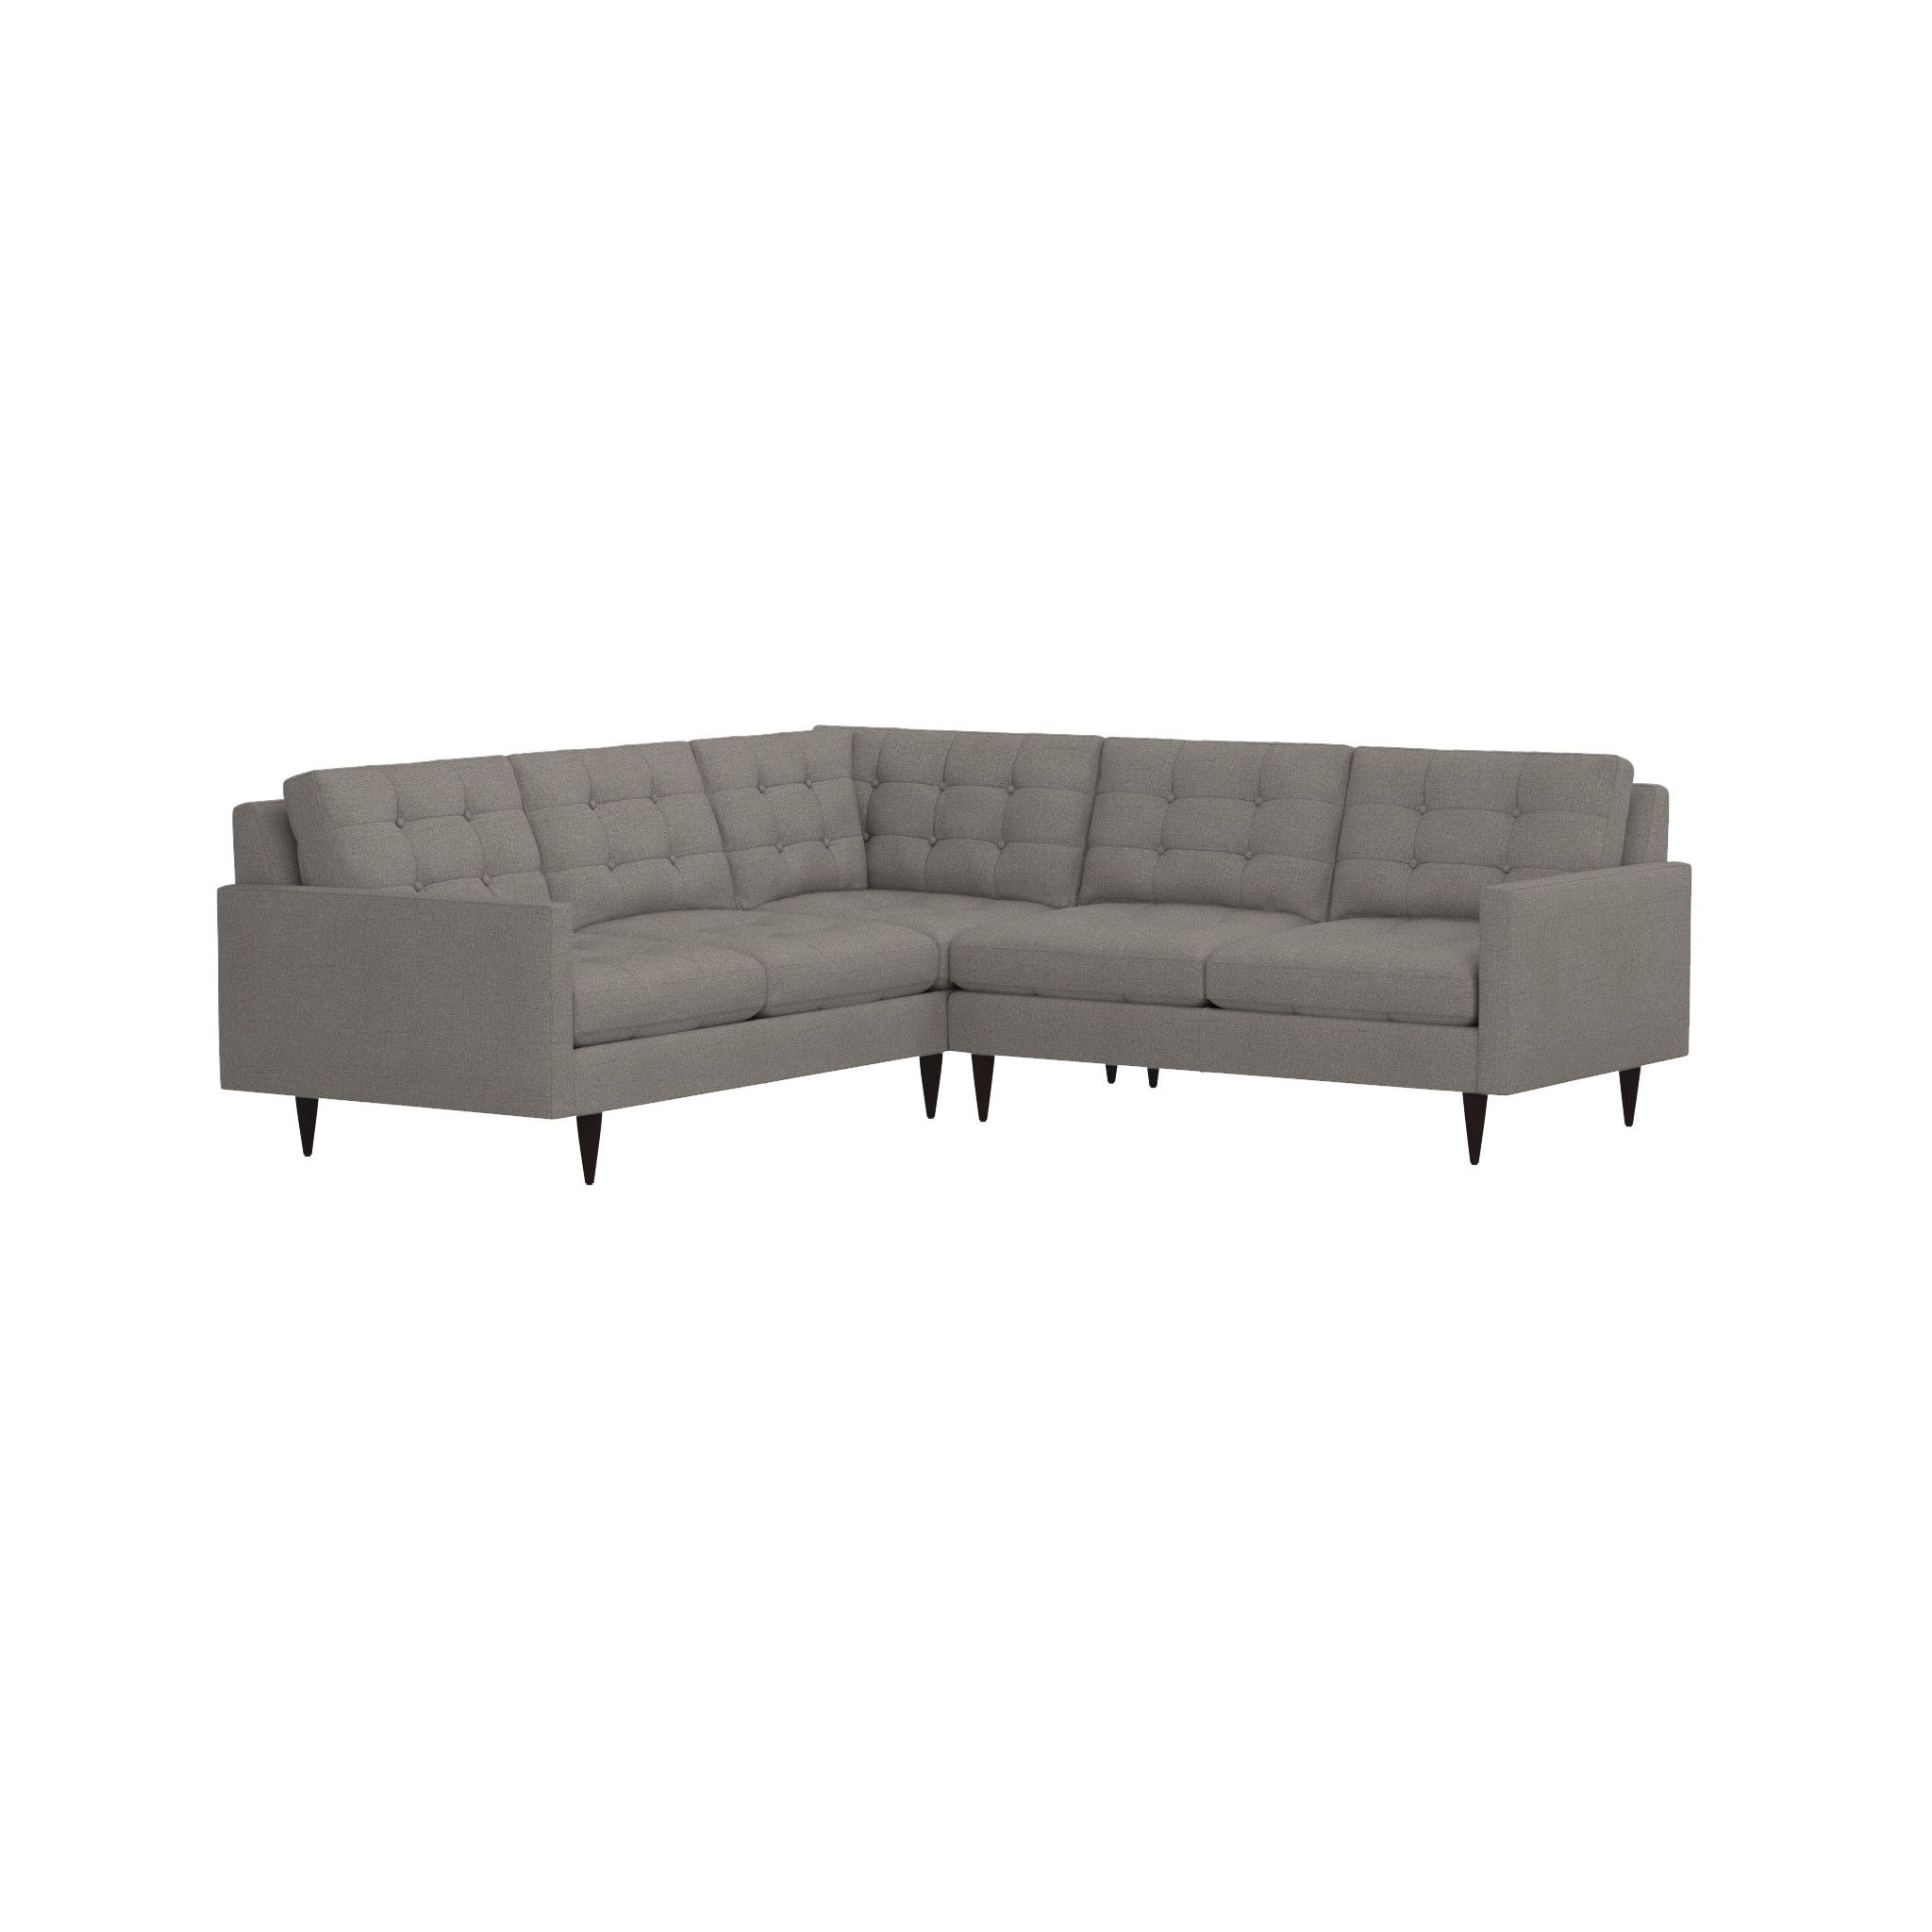 Shop petrie 2 piece corner midcentury sectional sofa now a crate and barrel classic its pure 1960s aesthetic is scaled deep so you can sit firm and